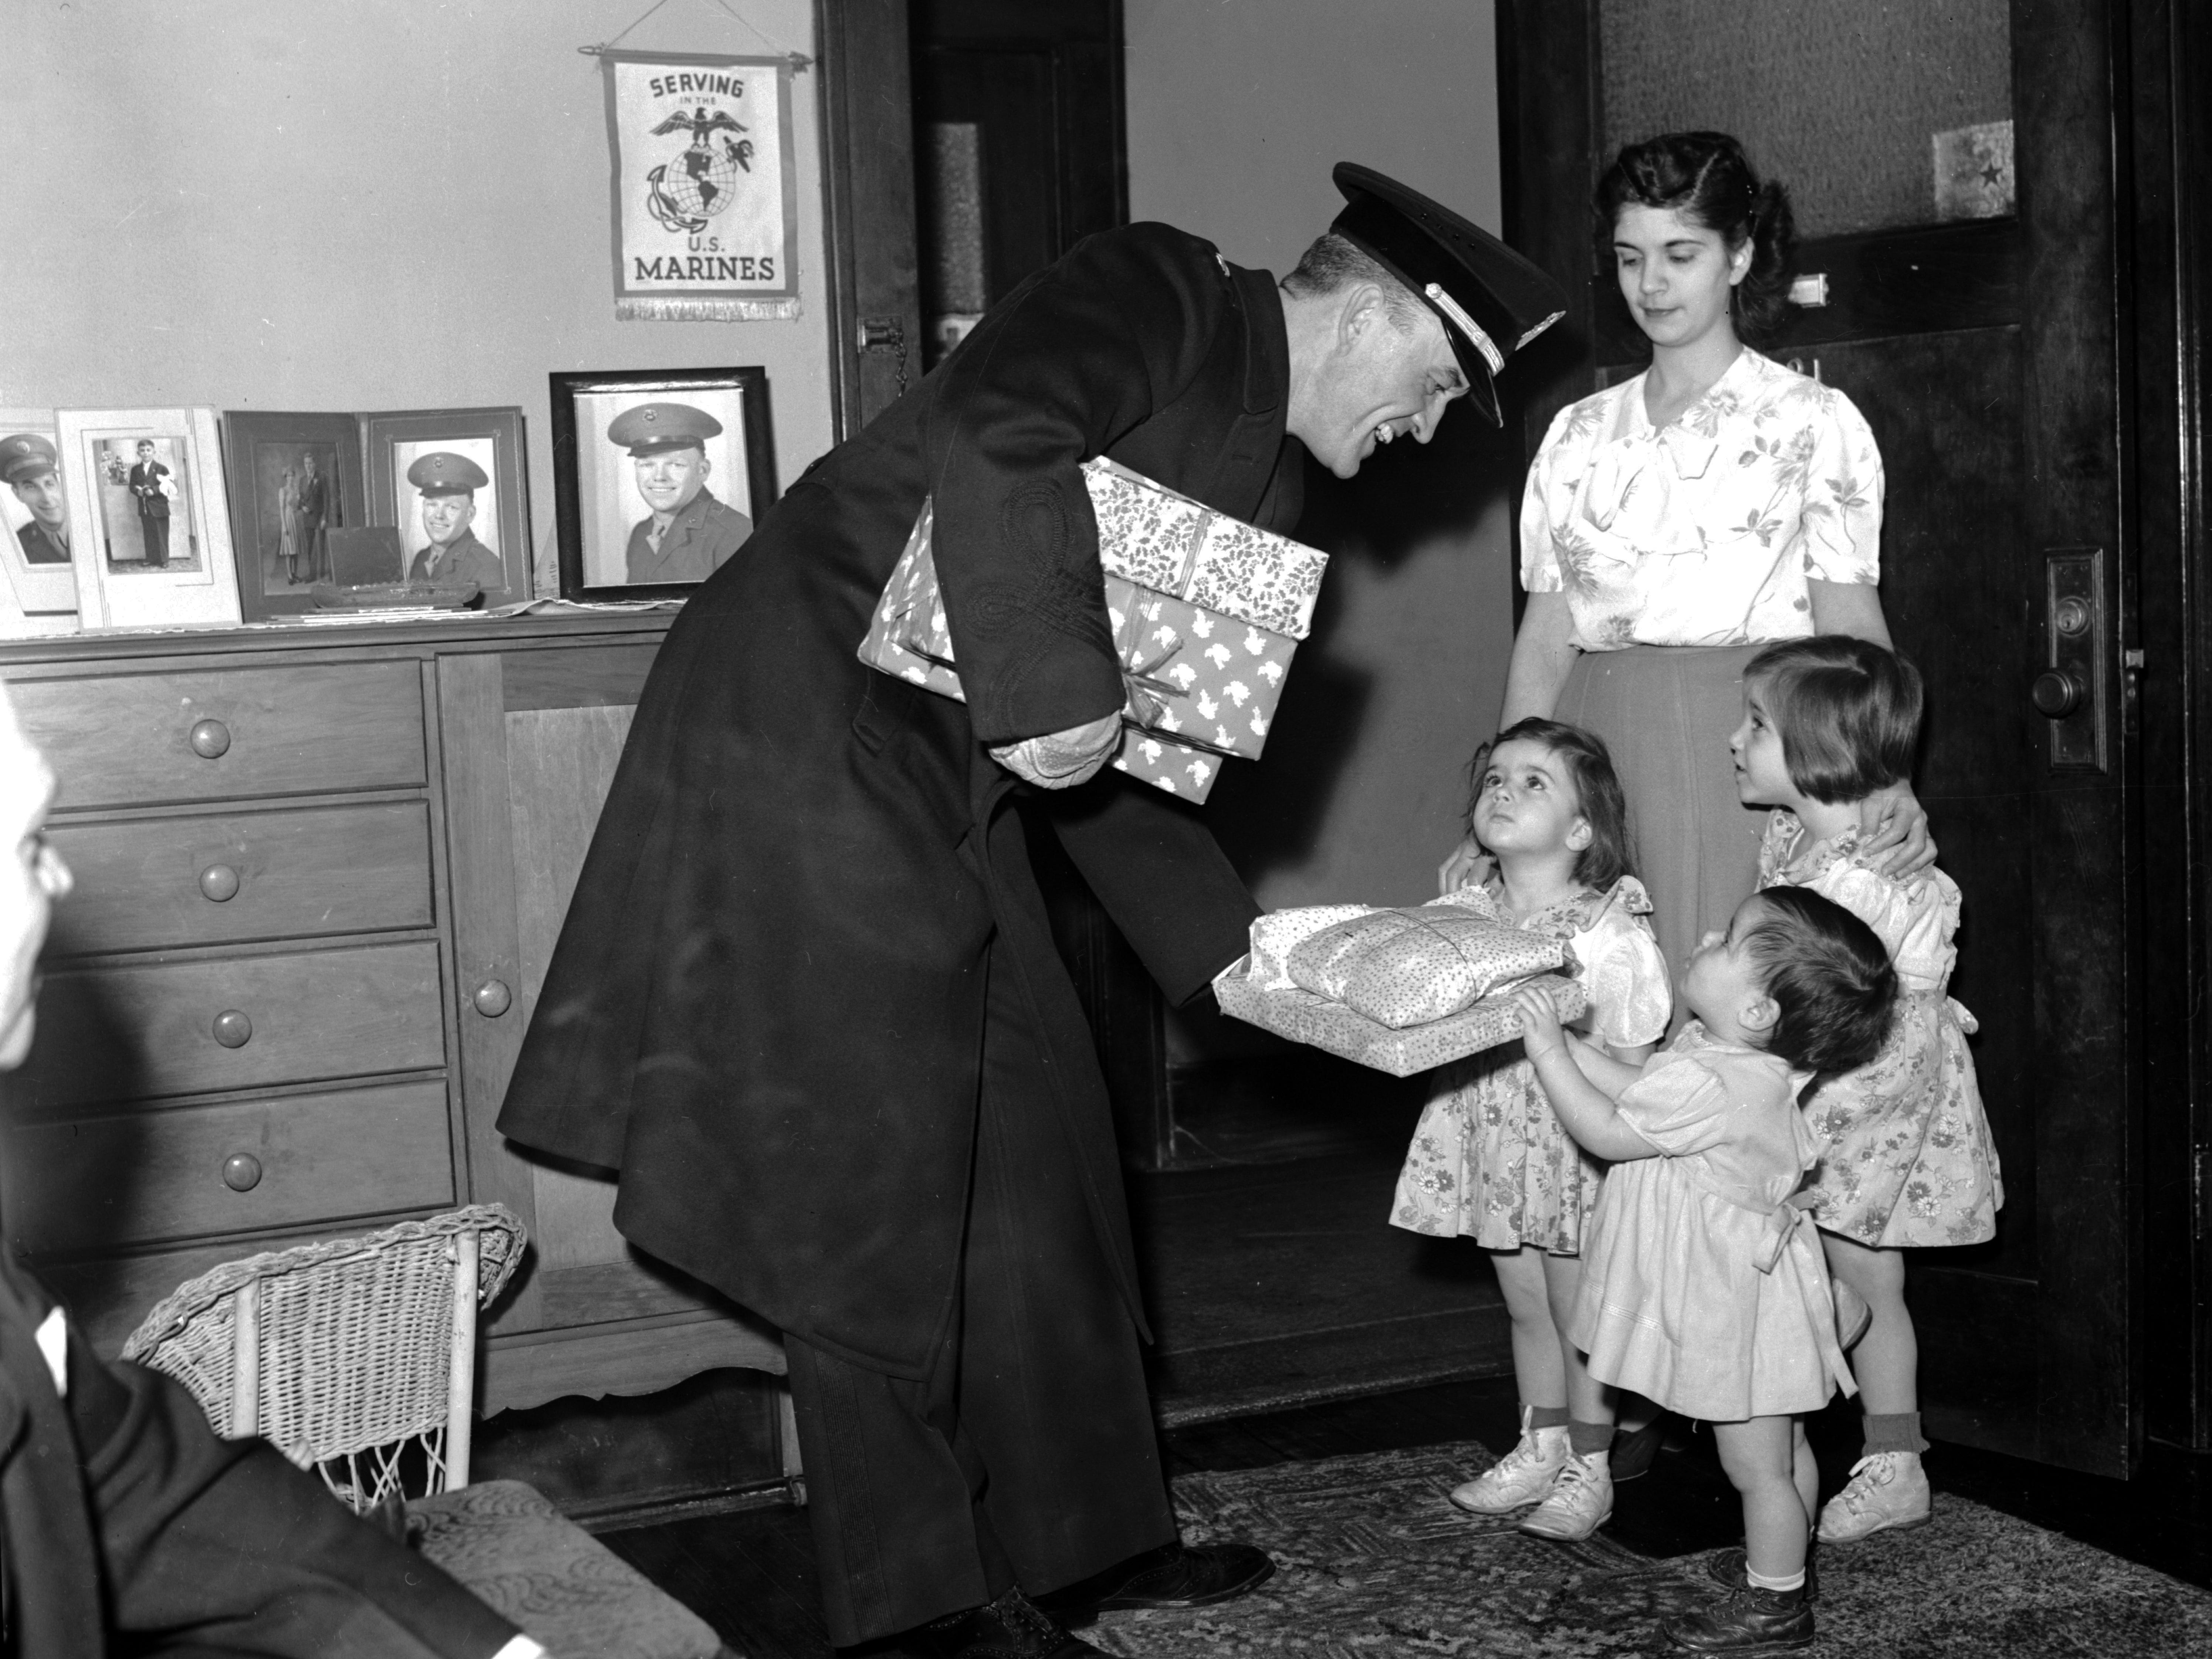 A man in uniform delivers Christmas presents to three children on behalf of the Old Newsboys charity on Dec. 12, 1944.